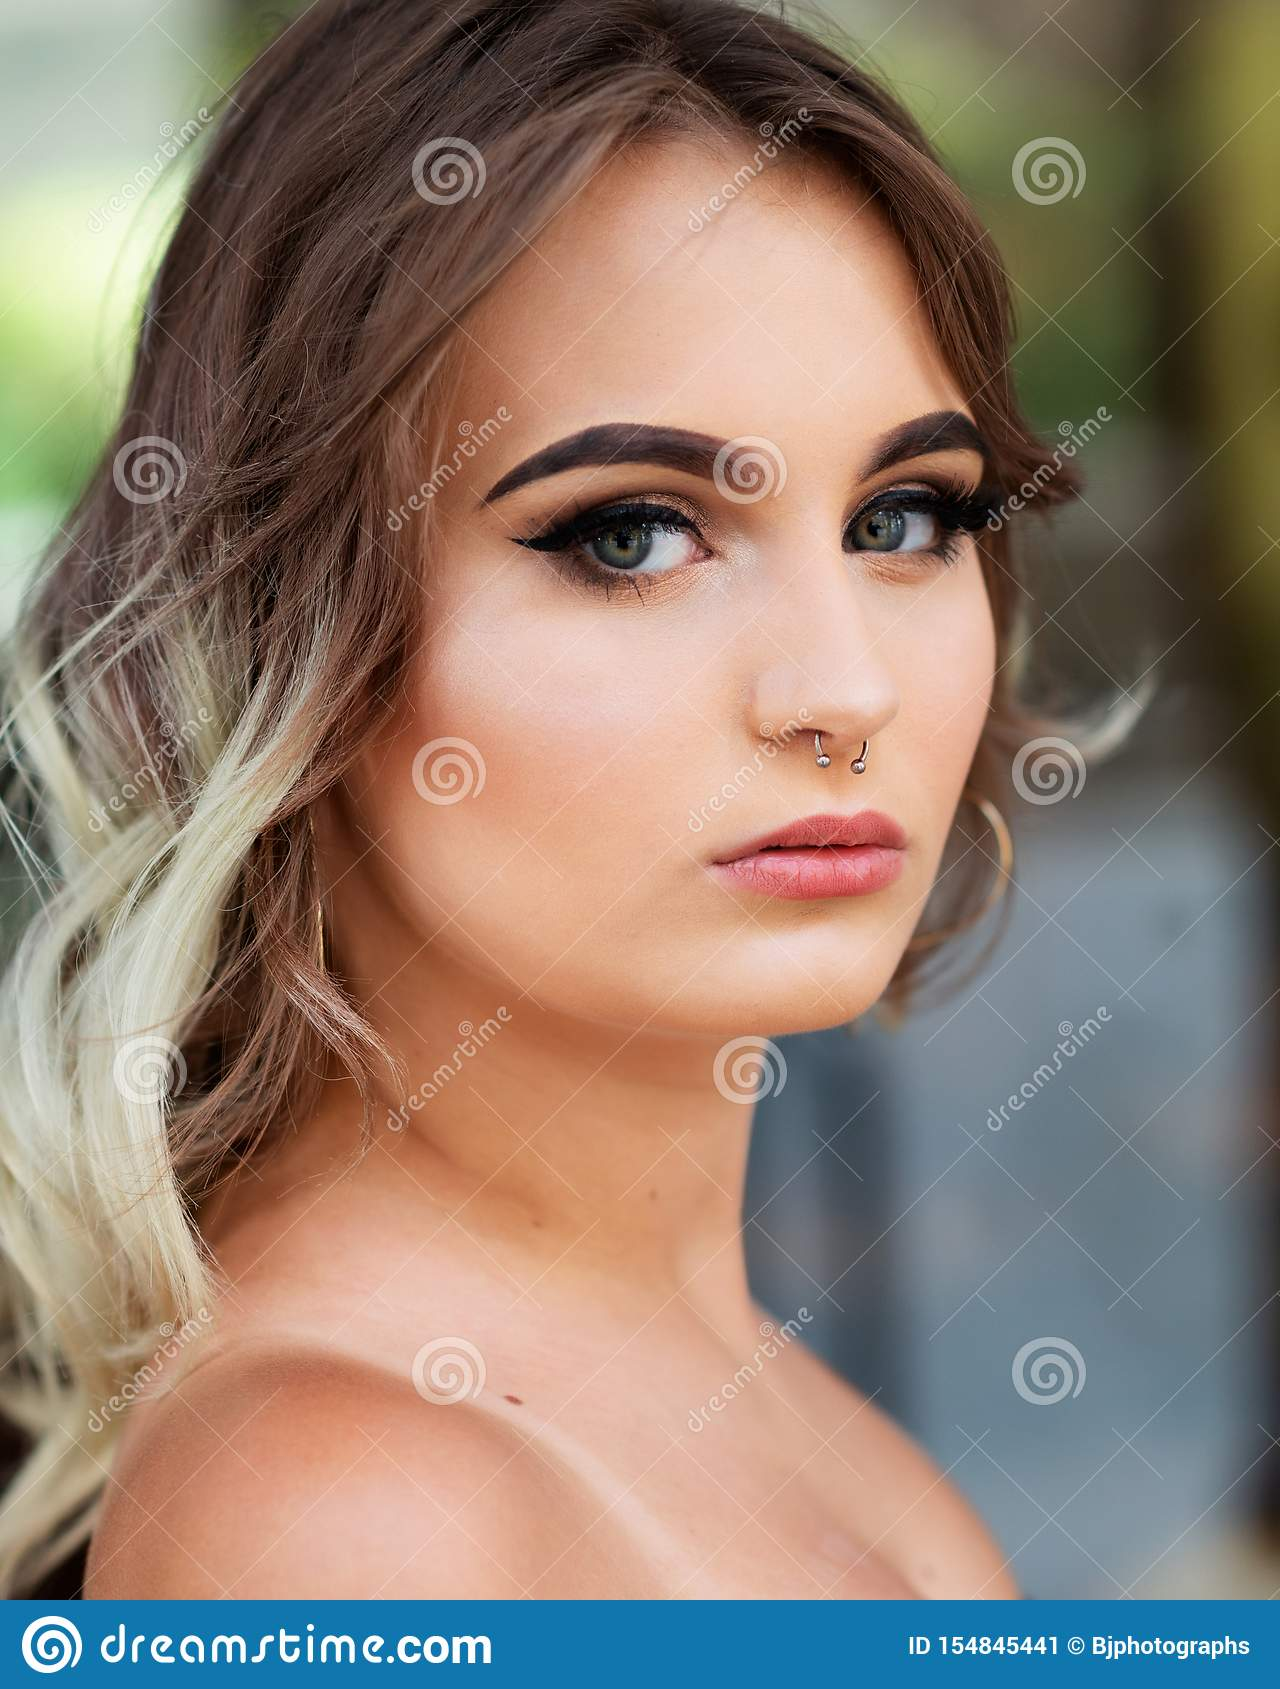 Portrait Of Beautiful Young Caucasian Girl With Barbell Septum